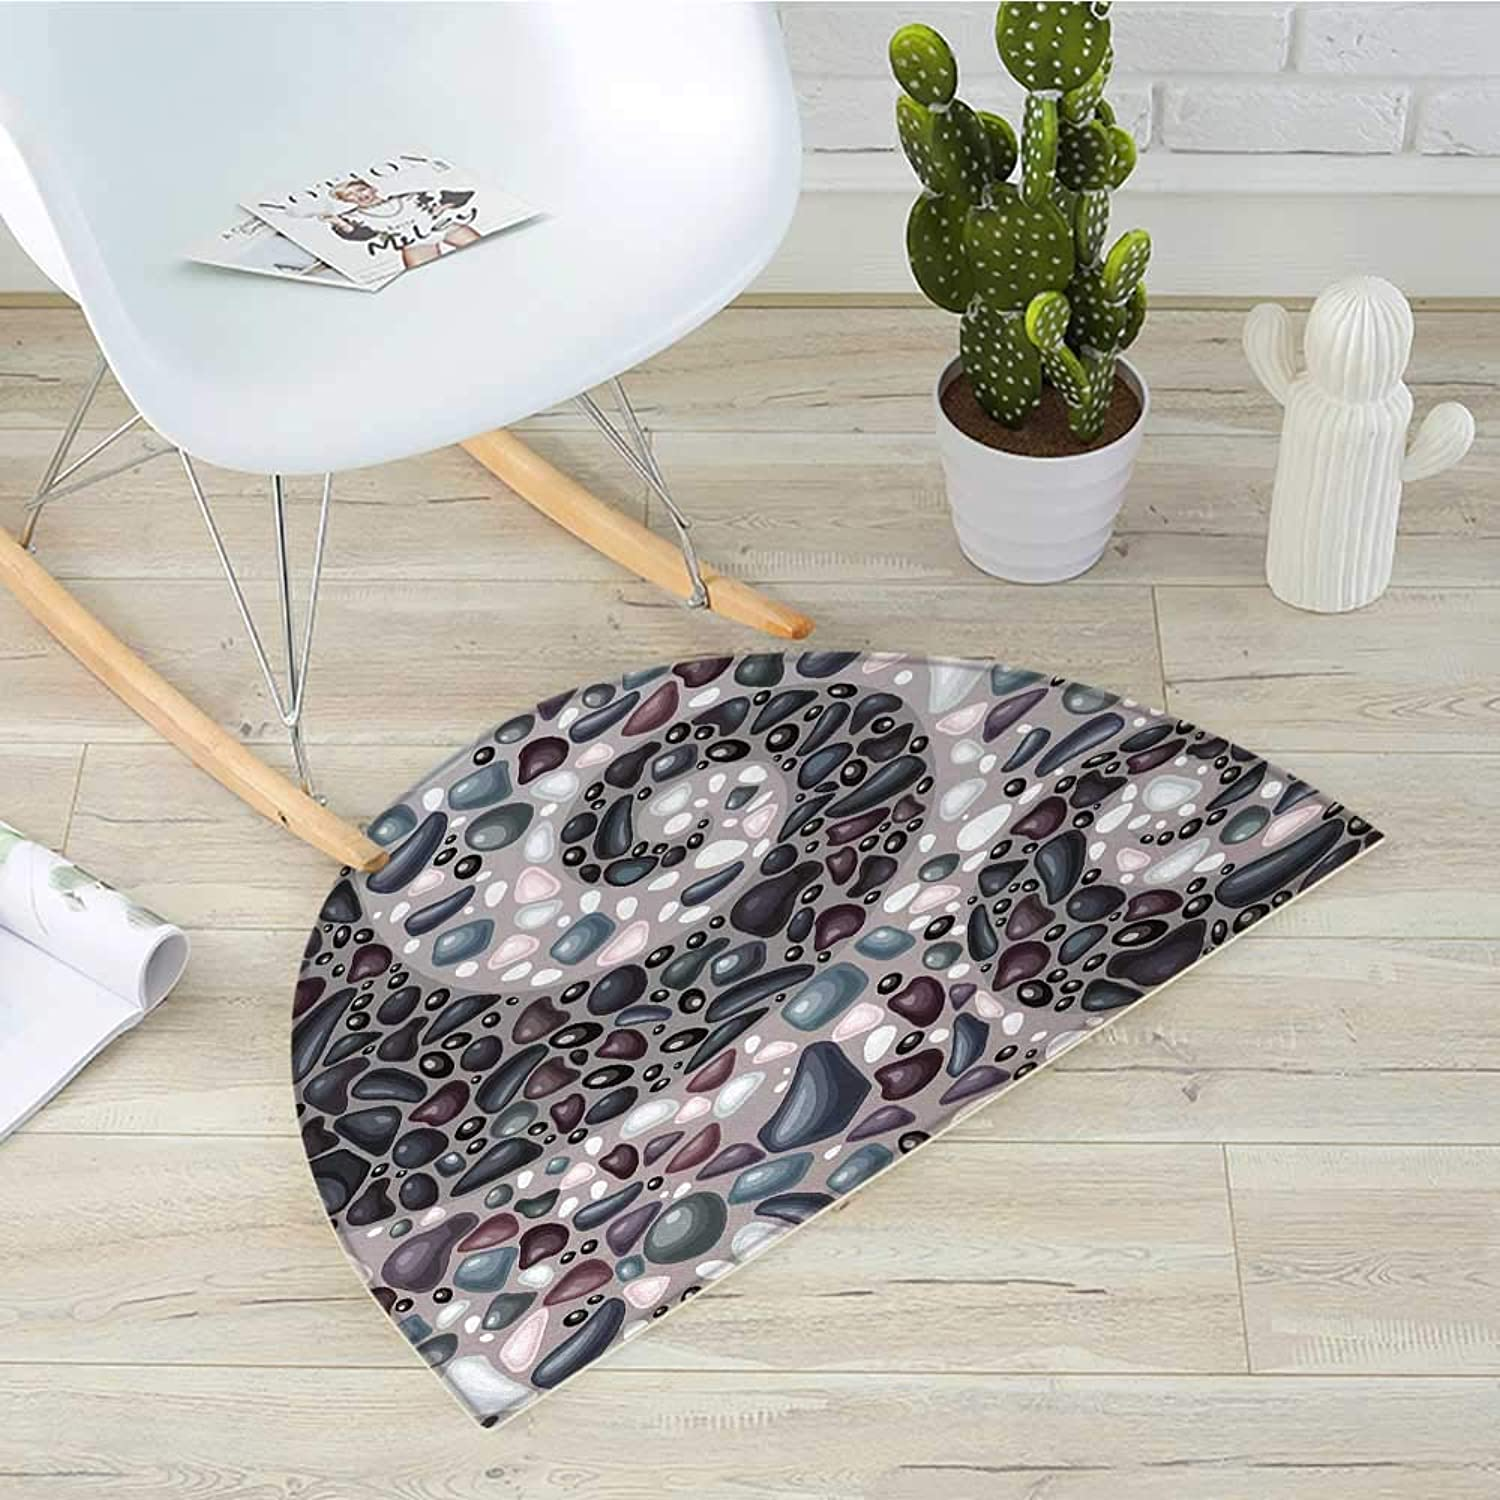 Nature Semicircular CushionGarden Mountains Volcanic Stones Image of Pebbles on Cement Print Entry Door Mat H 31.5  xD 47.2  Slate bluee Black and Dimgrey